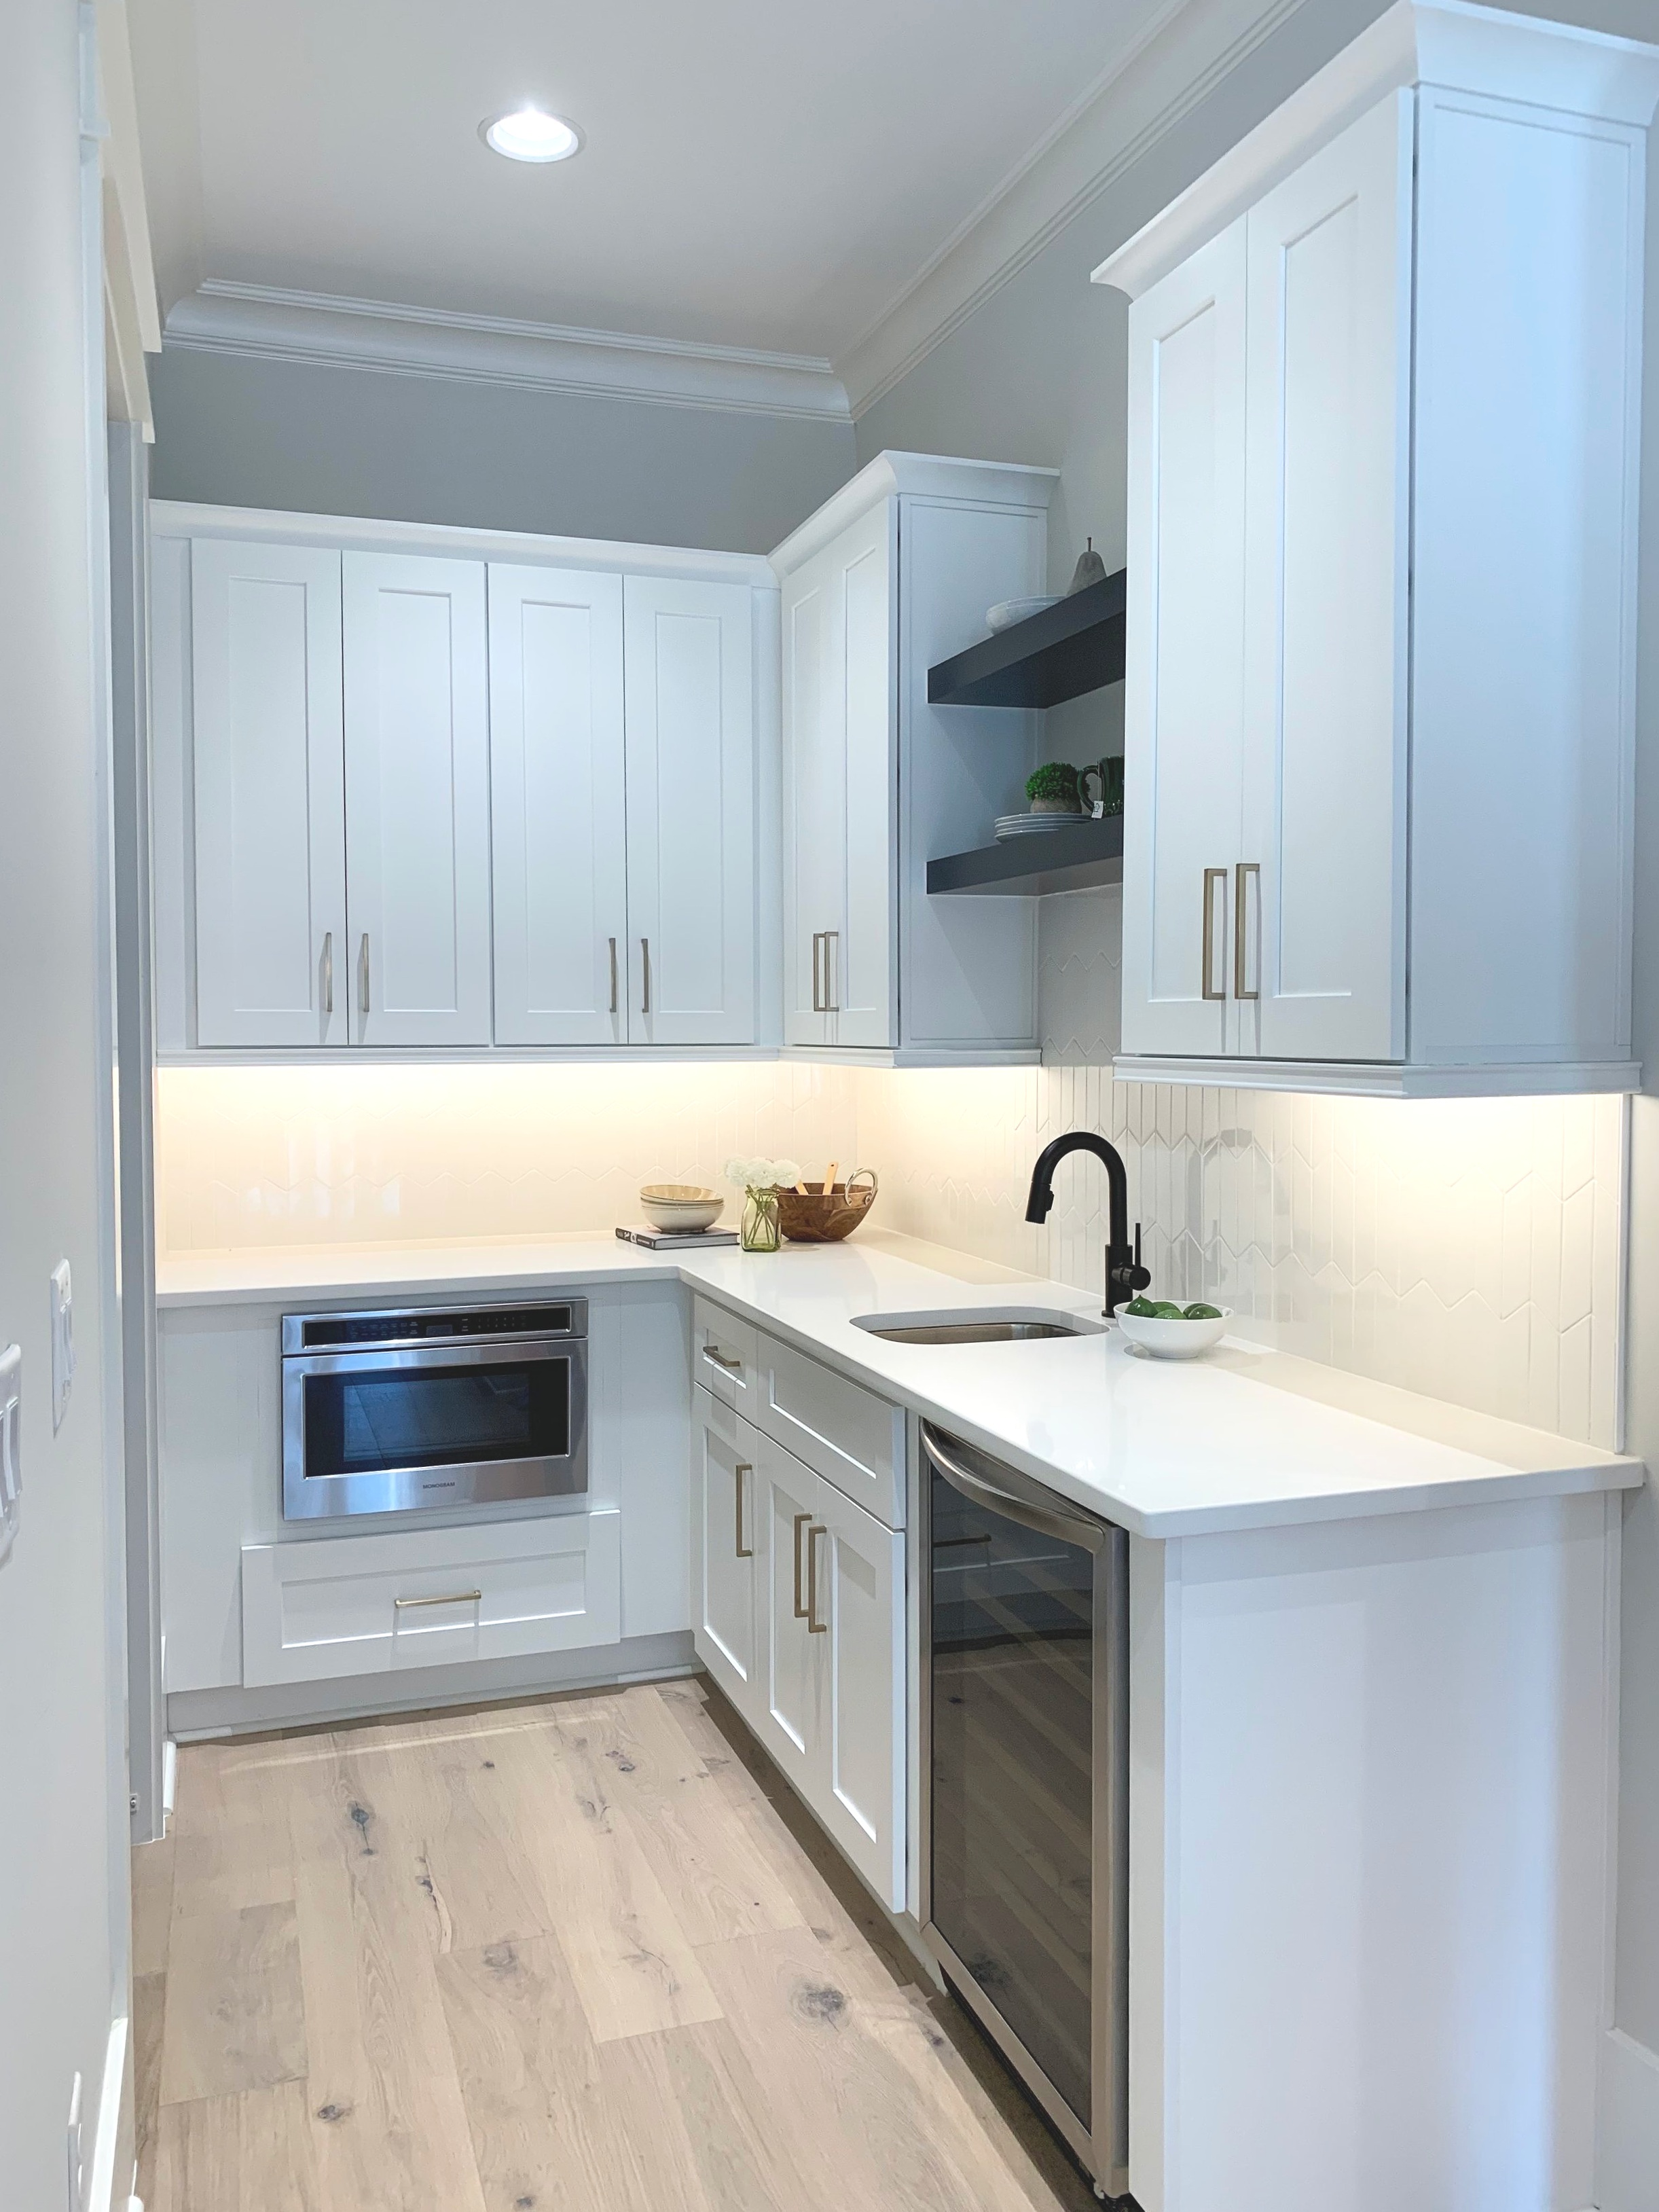 Butlers pantry with limed oak flooring, white cabinets, quartz counters and wine fridge.